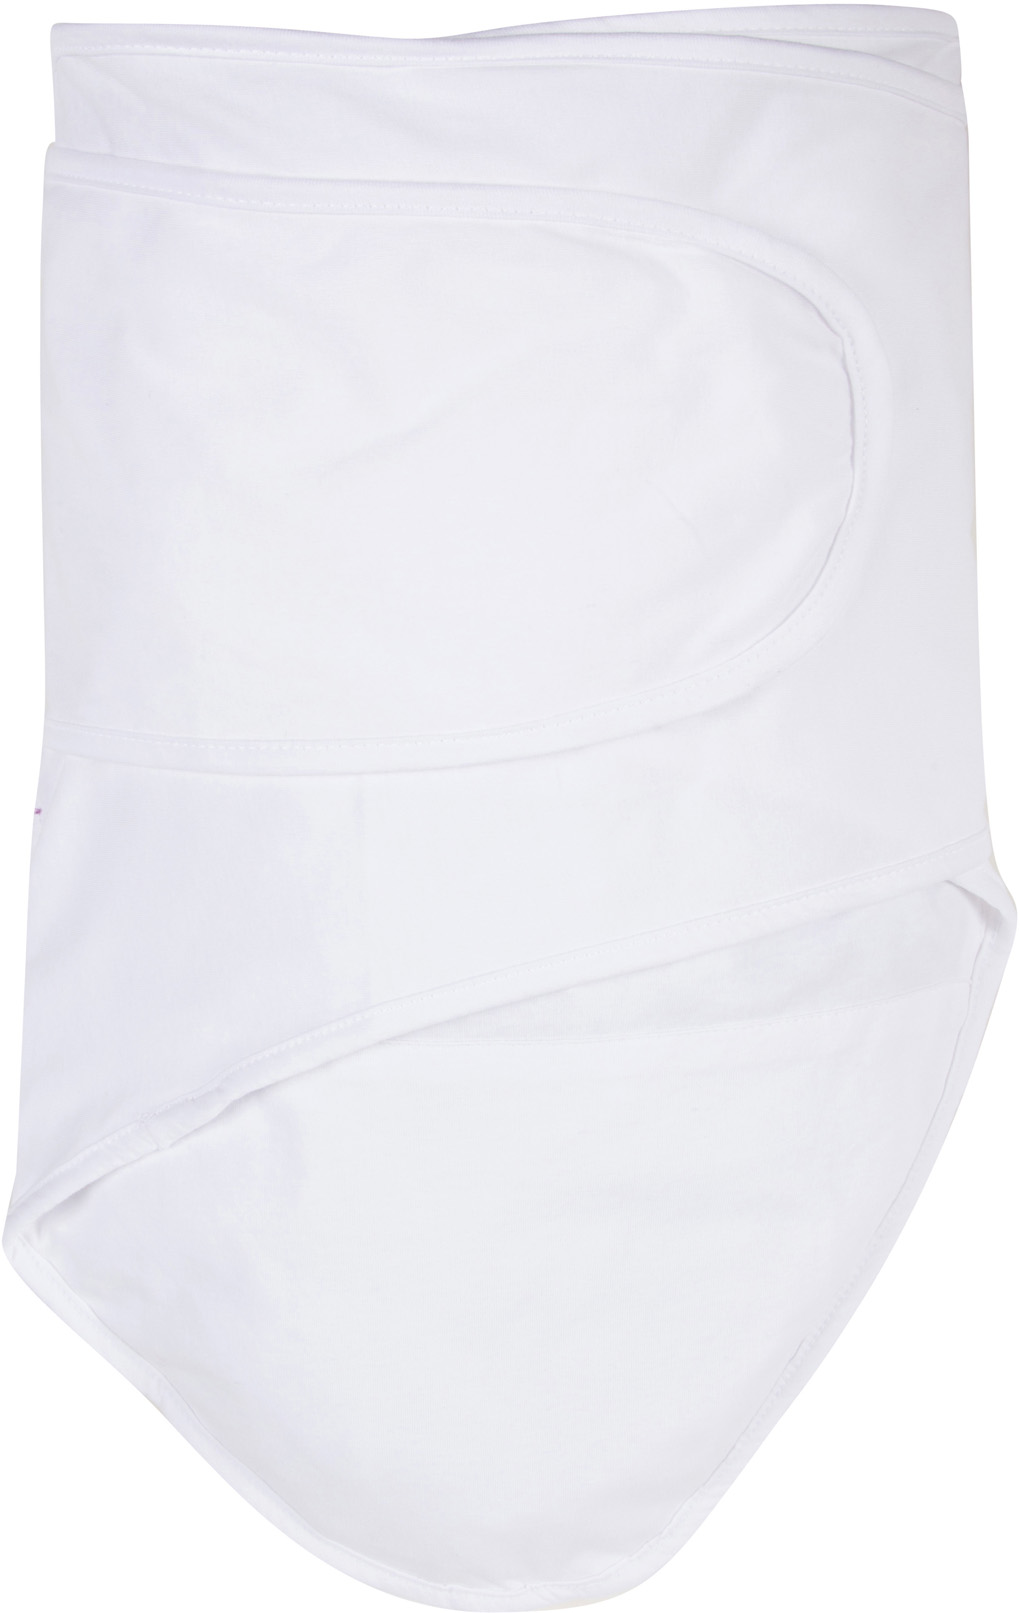 Miracle Blanket®: Solid White